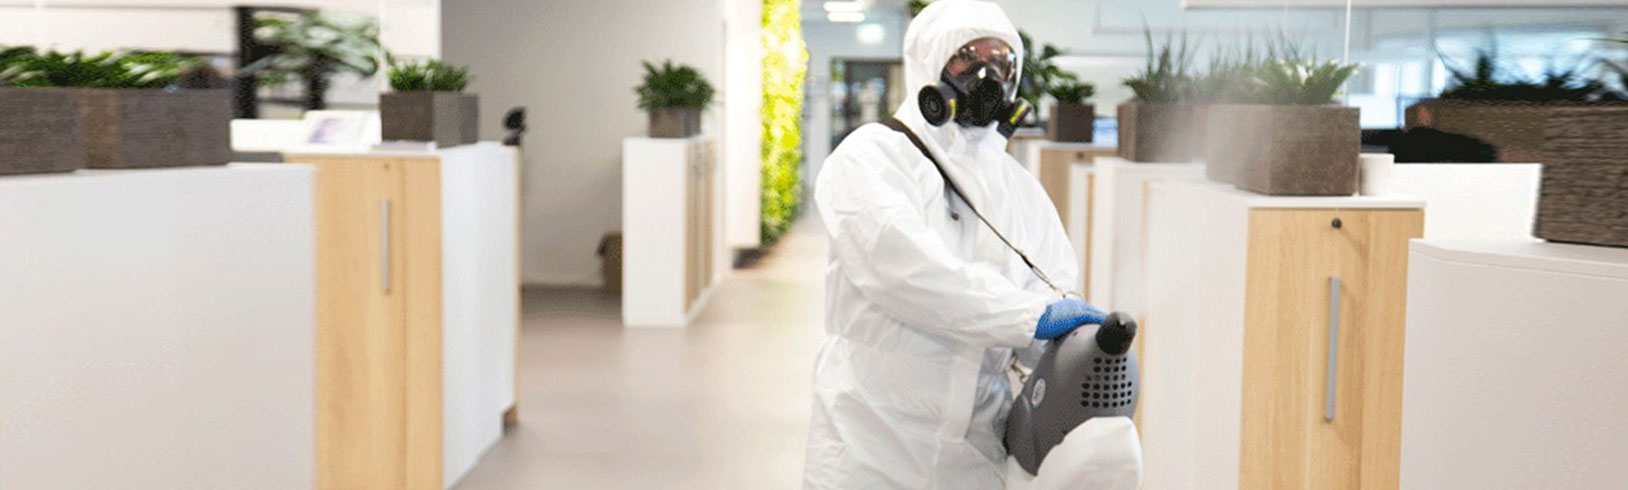 Disinfection and Decontamination Services